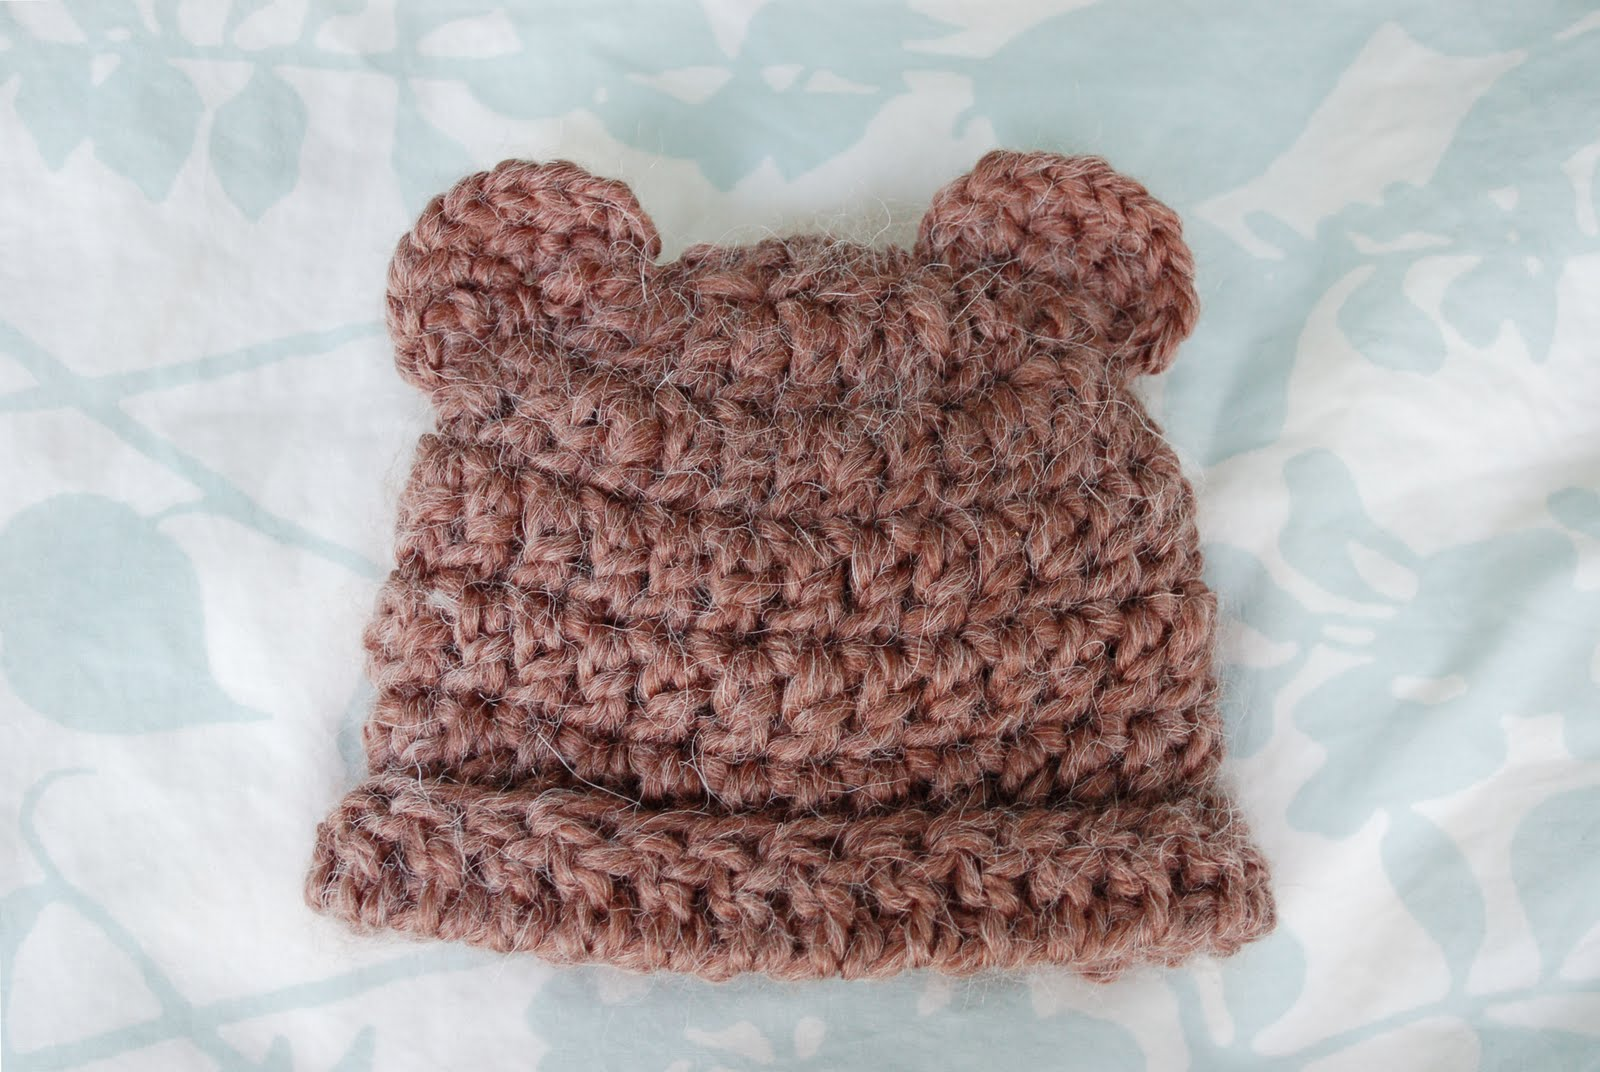 Free Crochet Pattern For Baby Floppy Hats : Alli Crafts: Free Pattern: Fuzzy Bear Hat With Ears - 3 months